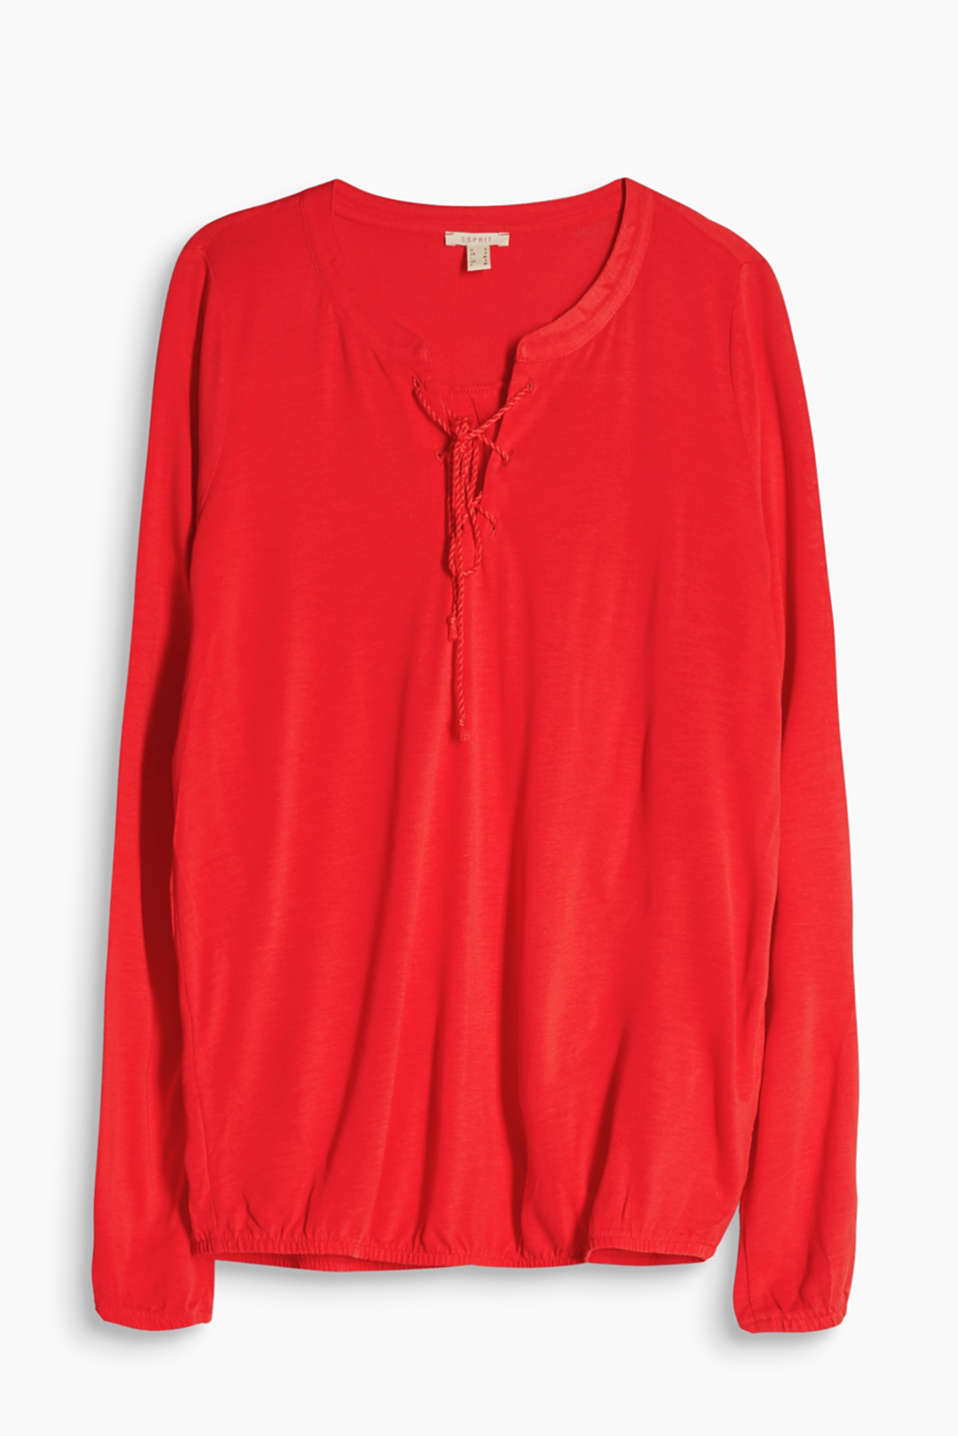 Flowing long sleeve top with lace-up neckline